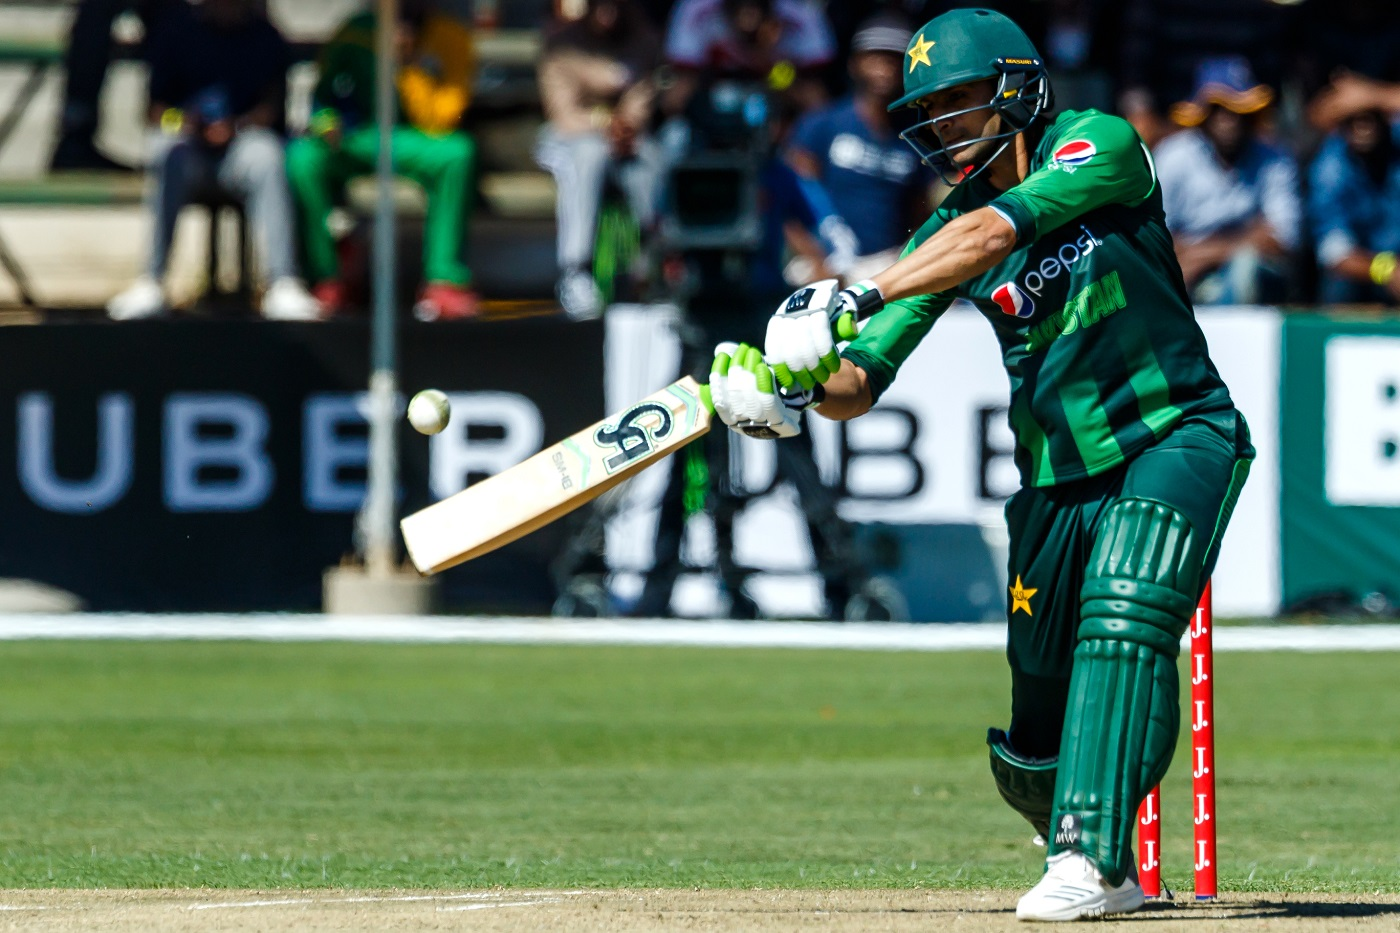 Shoaib Malik becomes 8th Pakistani batsman to score 7000+ runs in ODIs